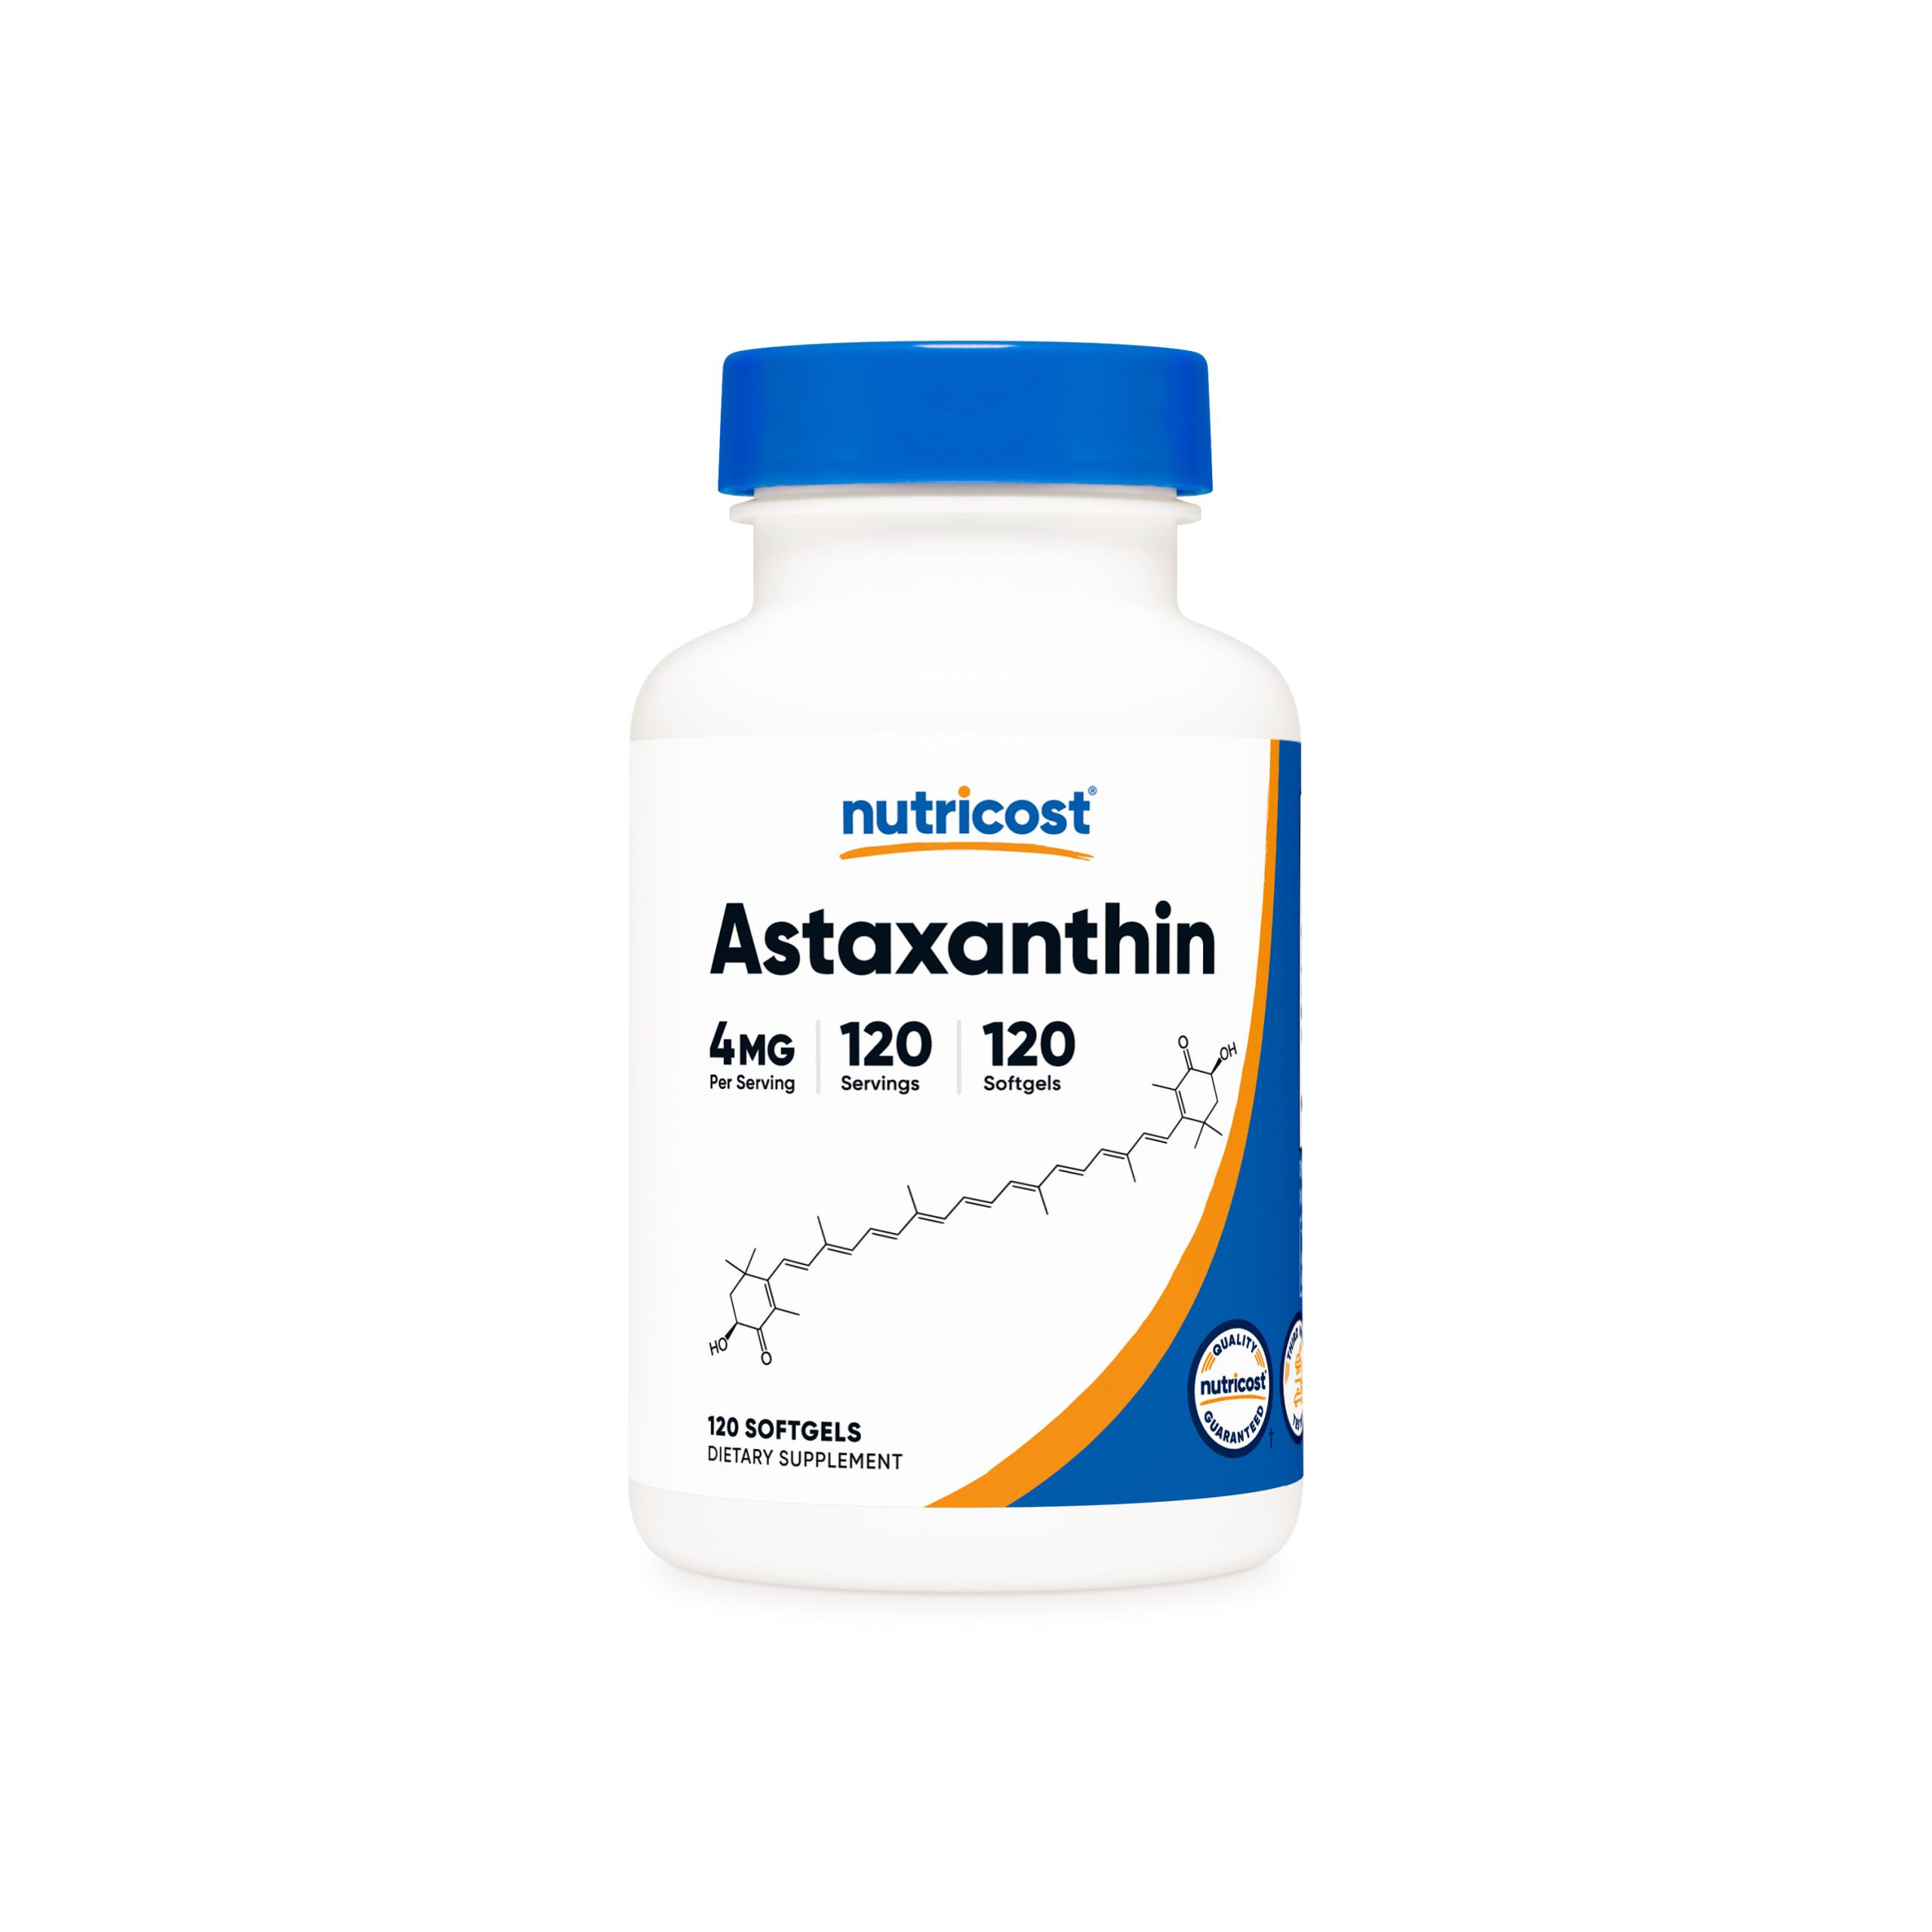 Astaxanthin 4mg Extract Supplement Facts